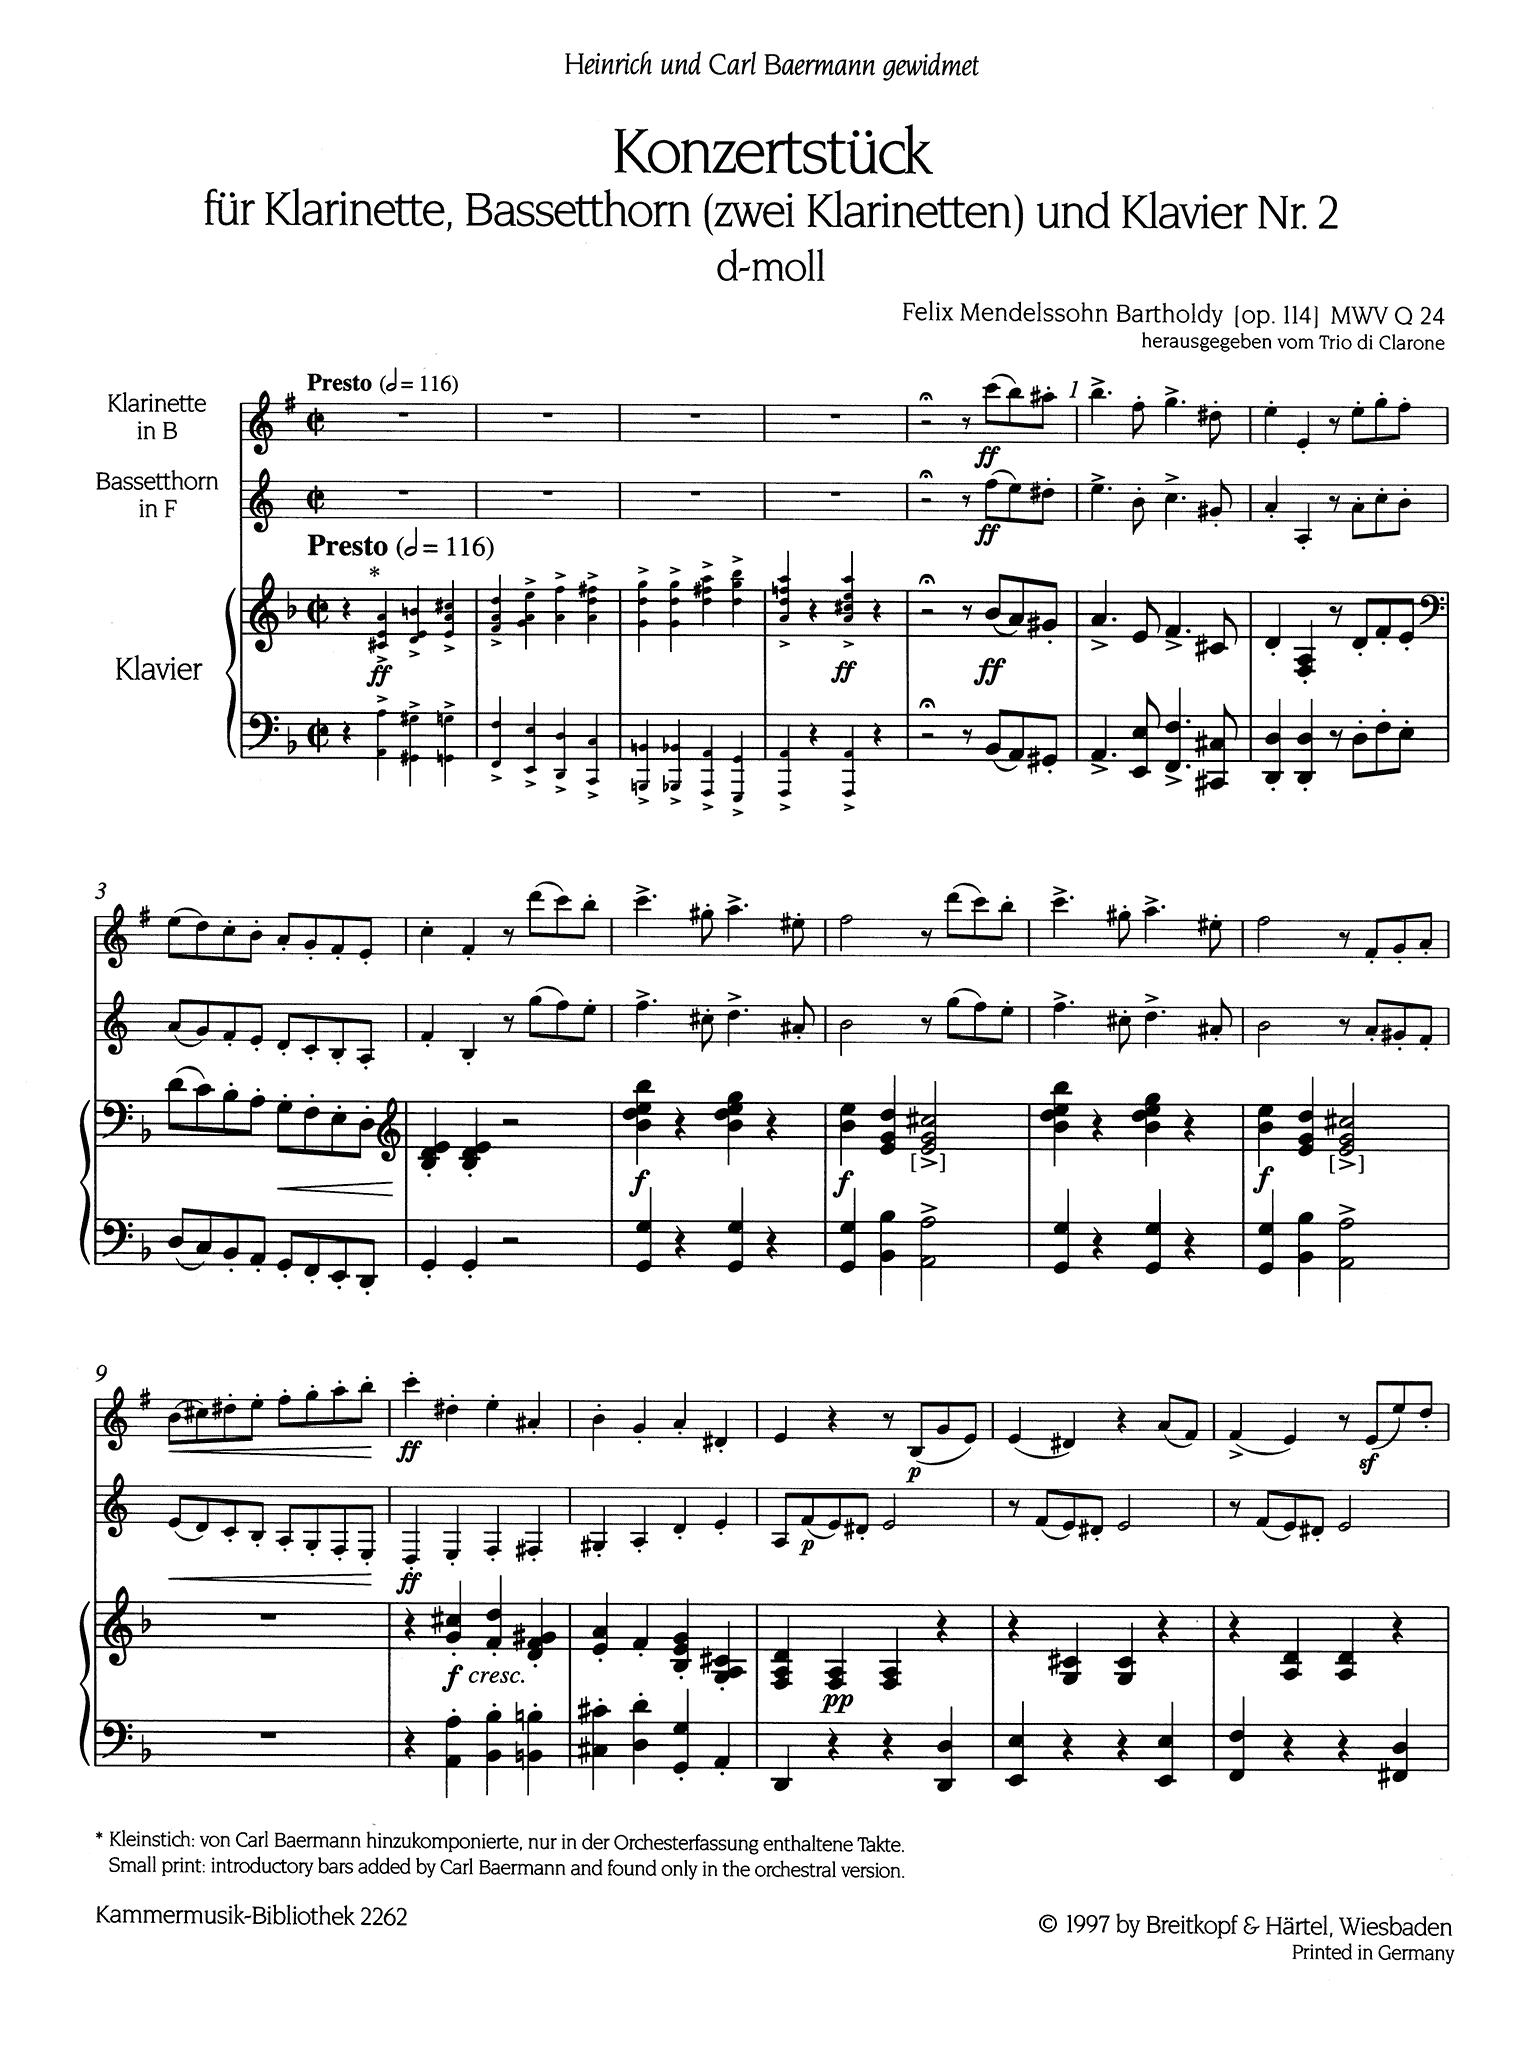 Concertpiece No. 2 in D Minor, Op. 114 Score